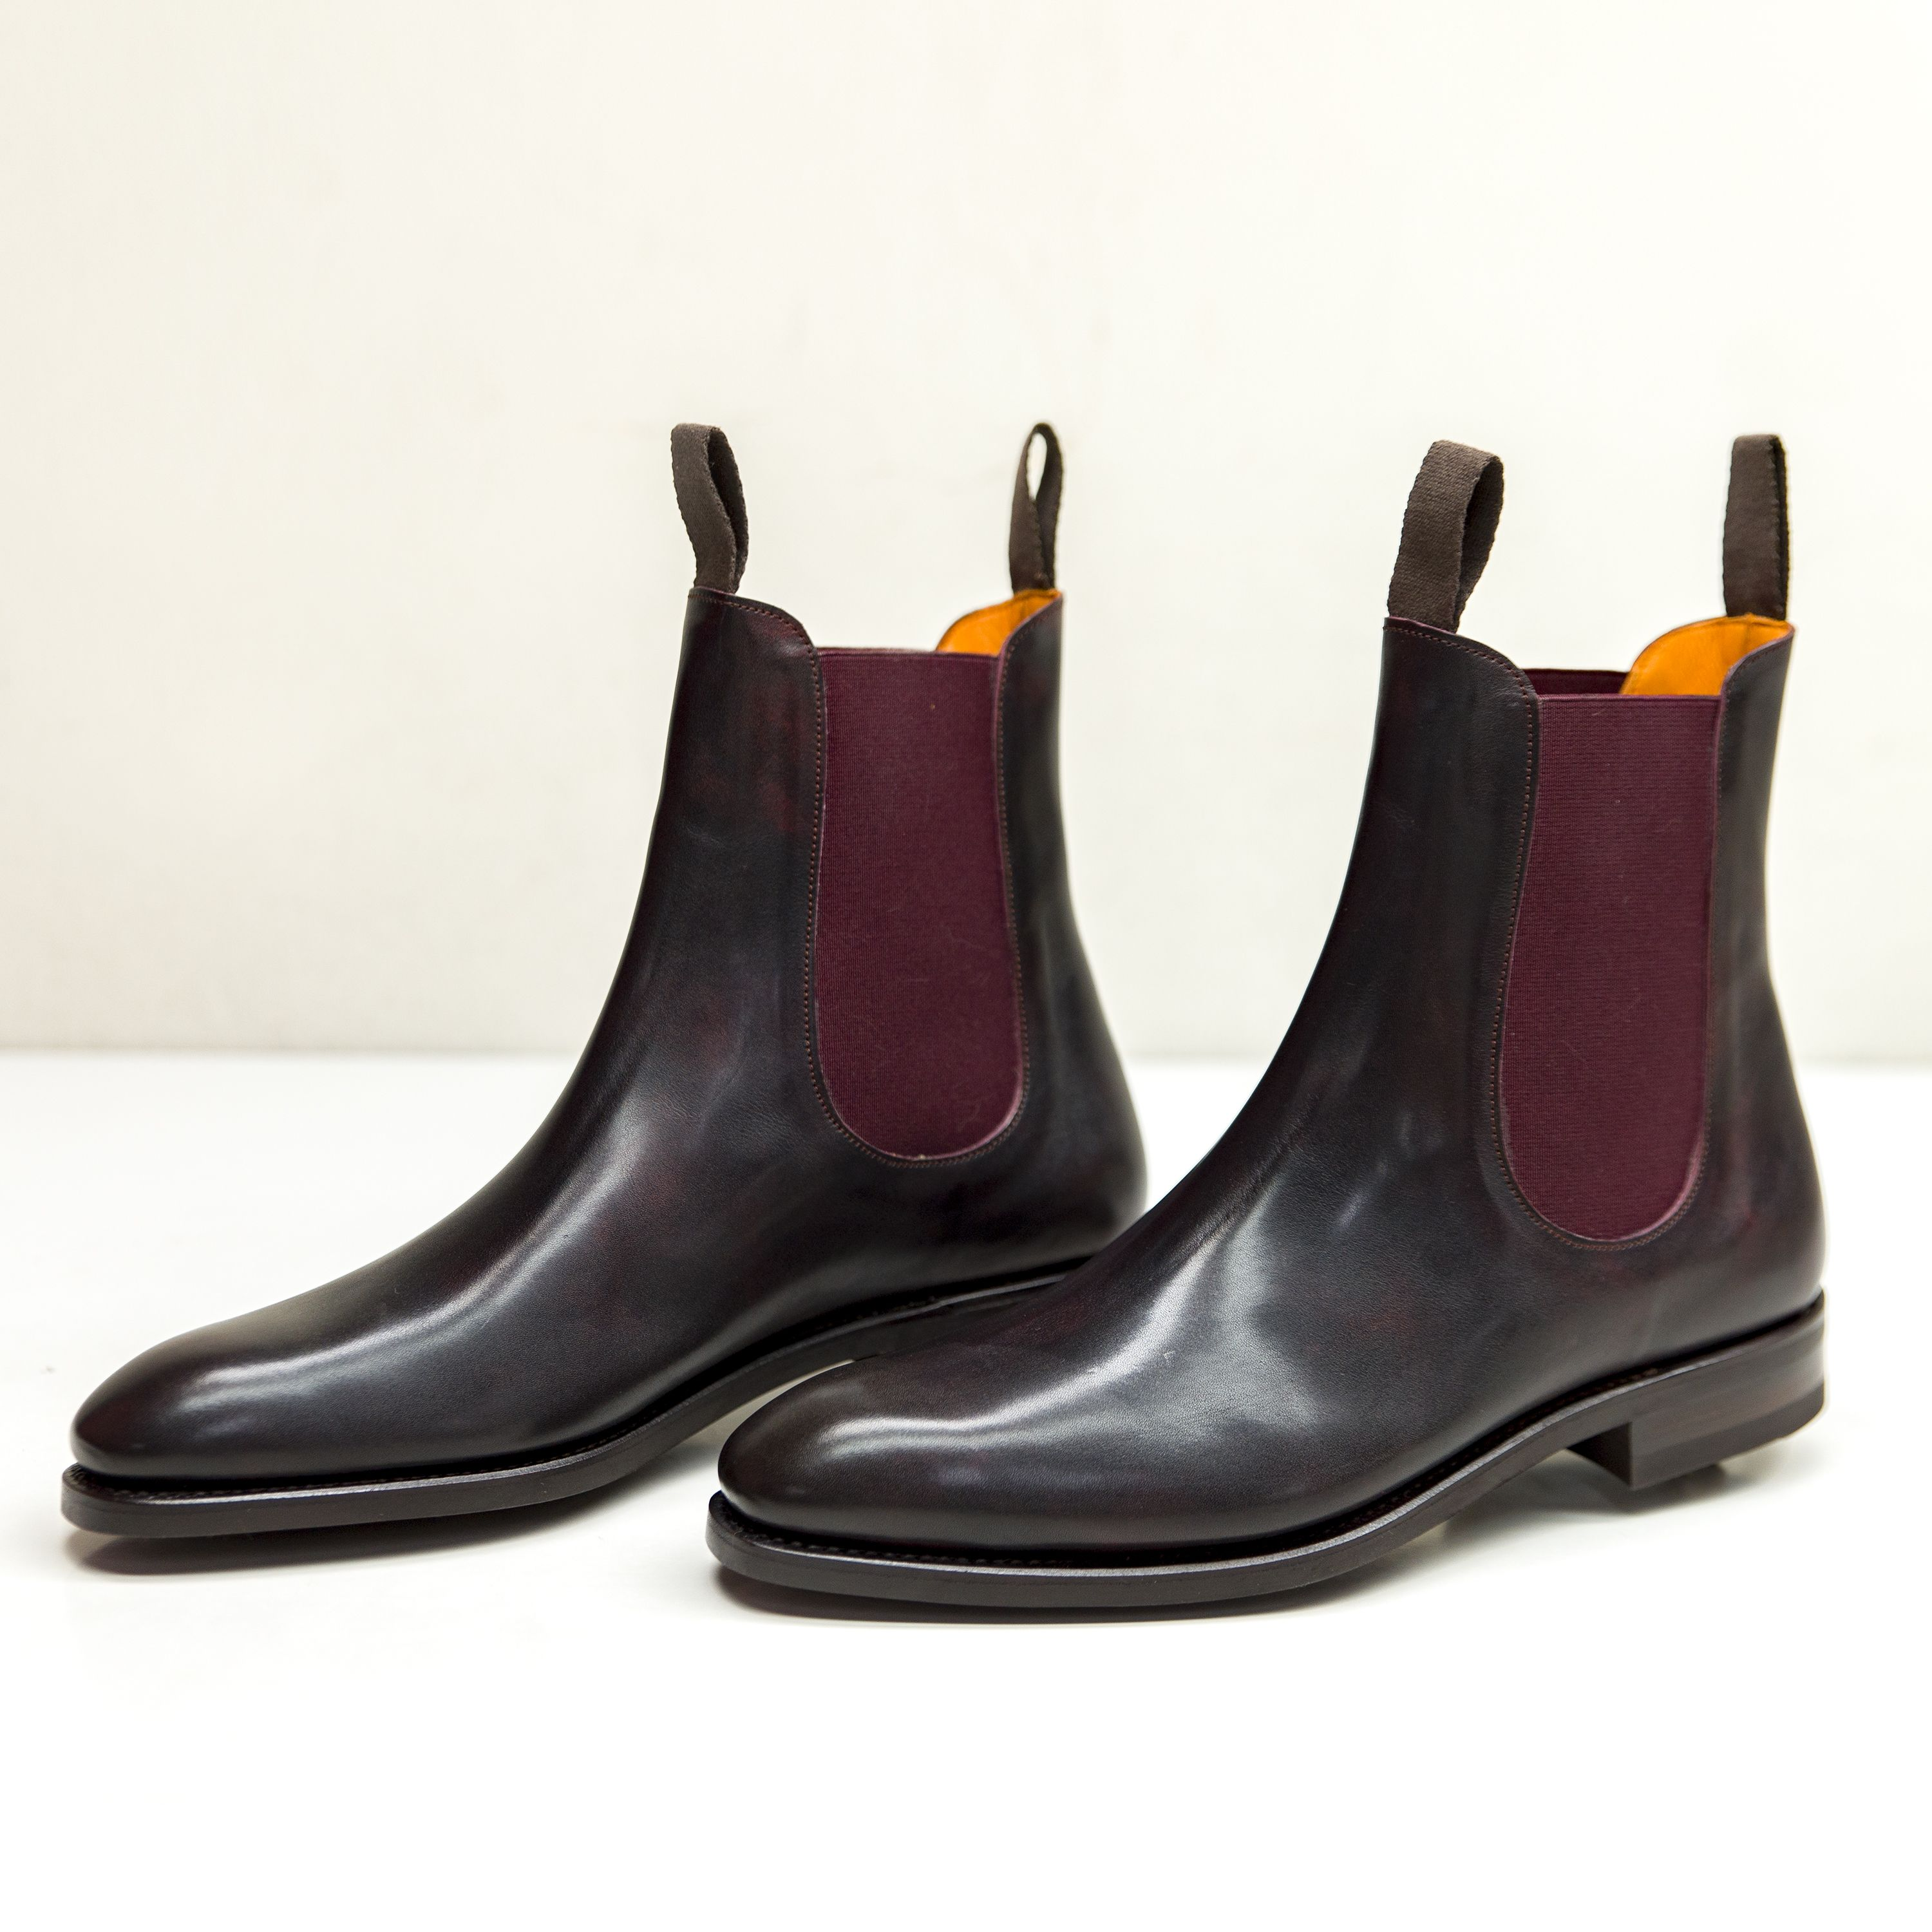 CHELSEA BOOTS 80514 RAIN (INCL. SHOE TREE) | Boots, Black